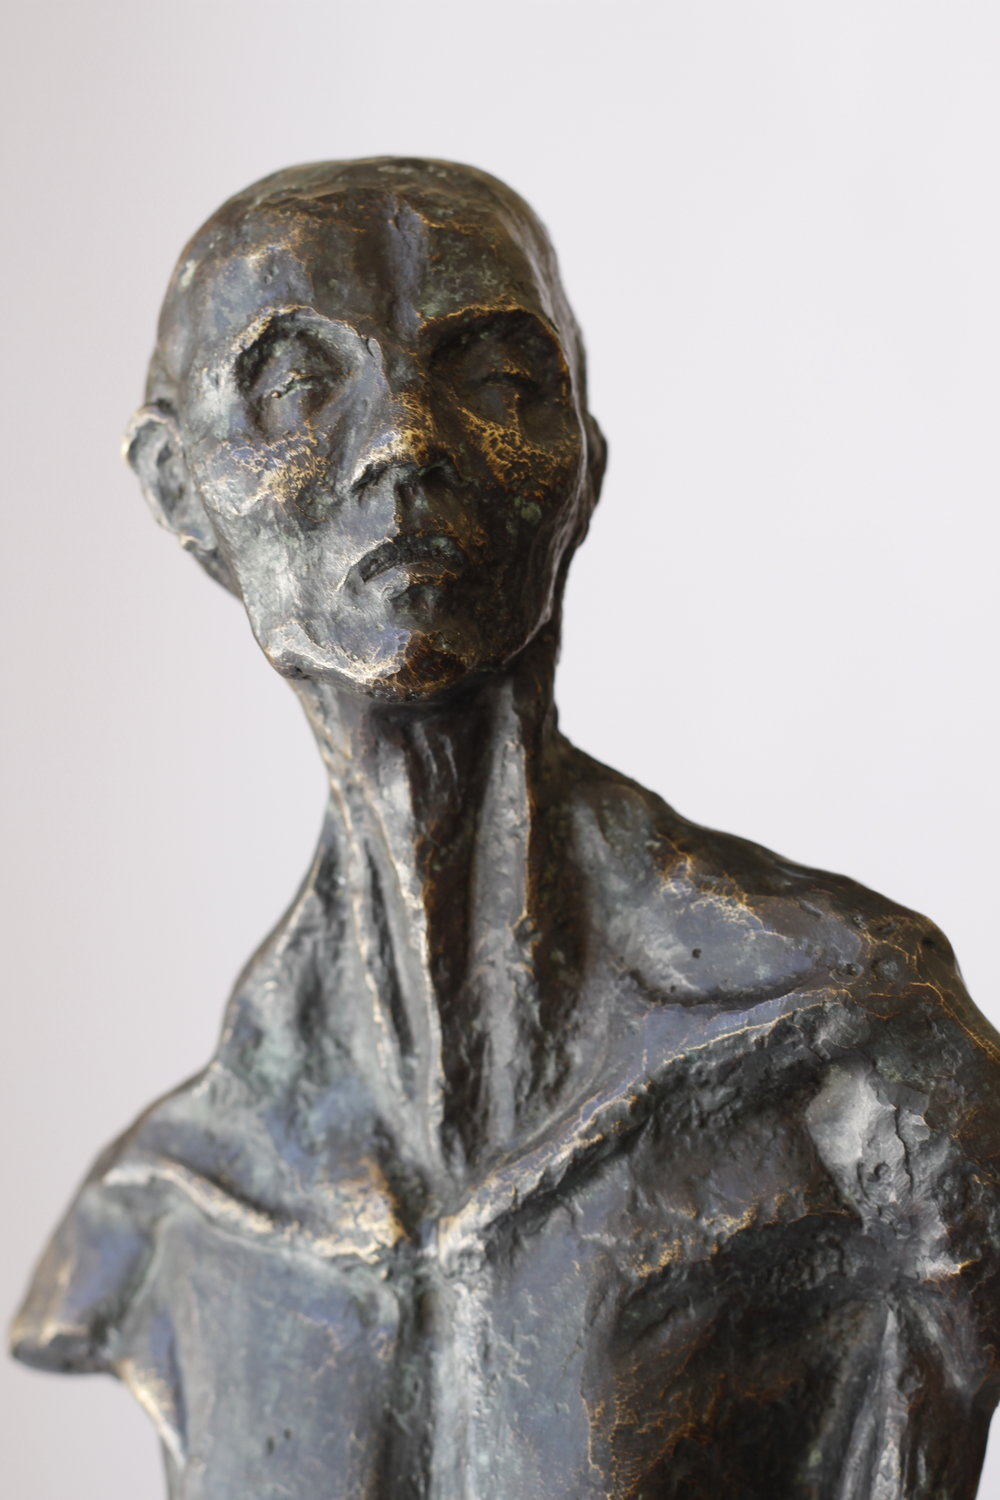 Untitled 2014,  50X20X15,  Bronze statue by Mwafak Maklad, a young Syrian artist. Photo courtesy of ARA.